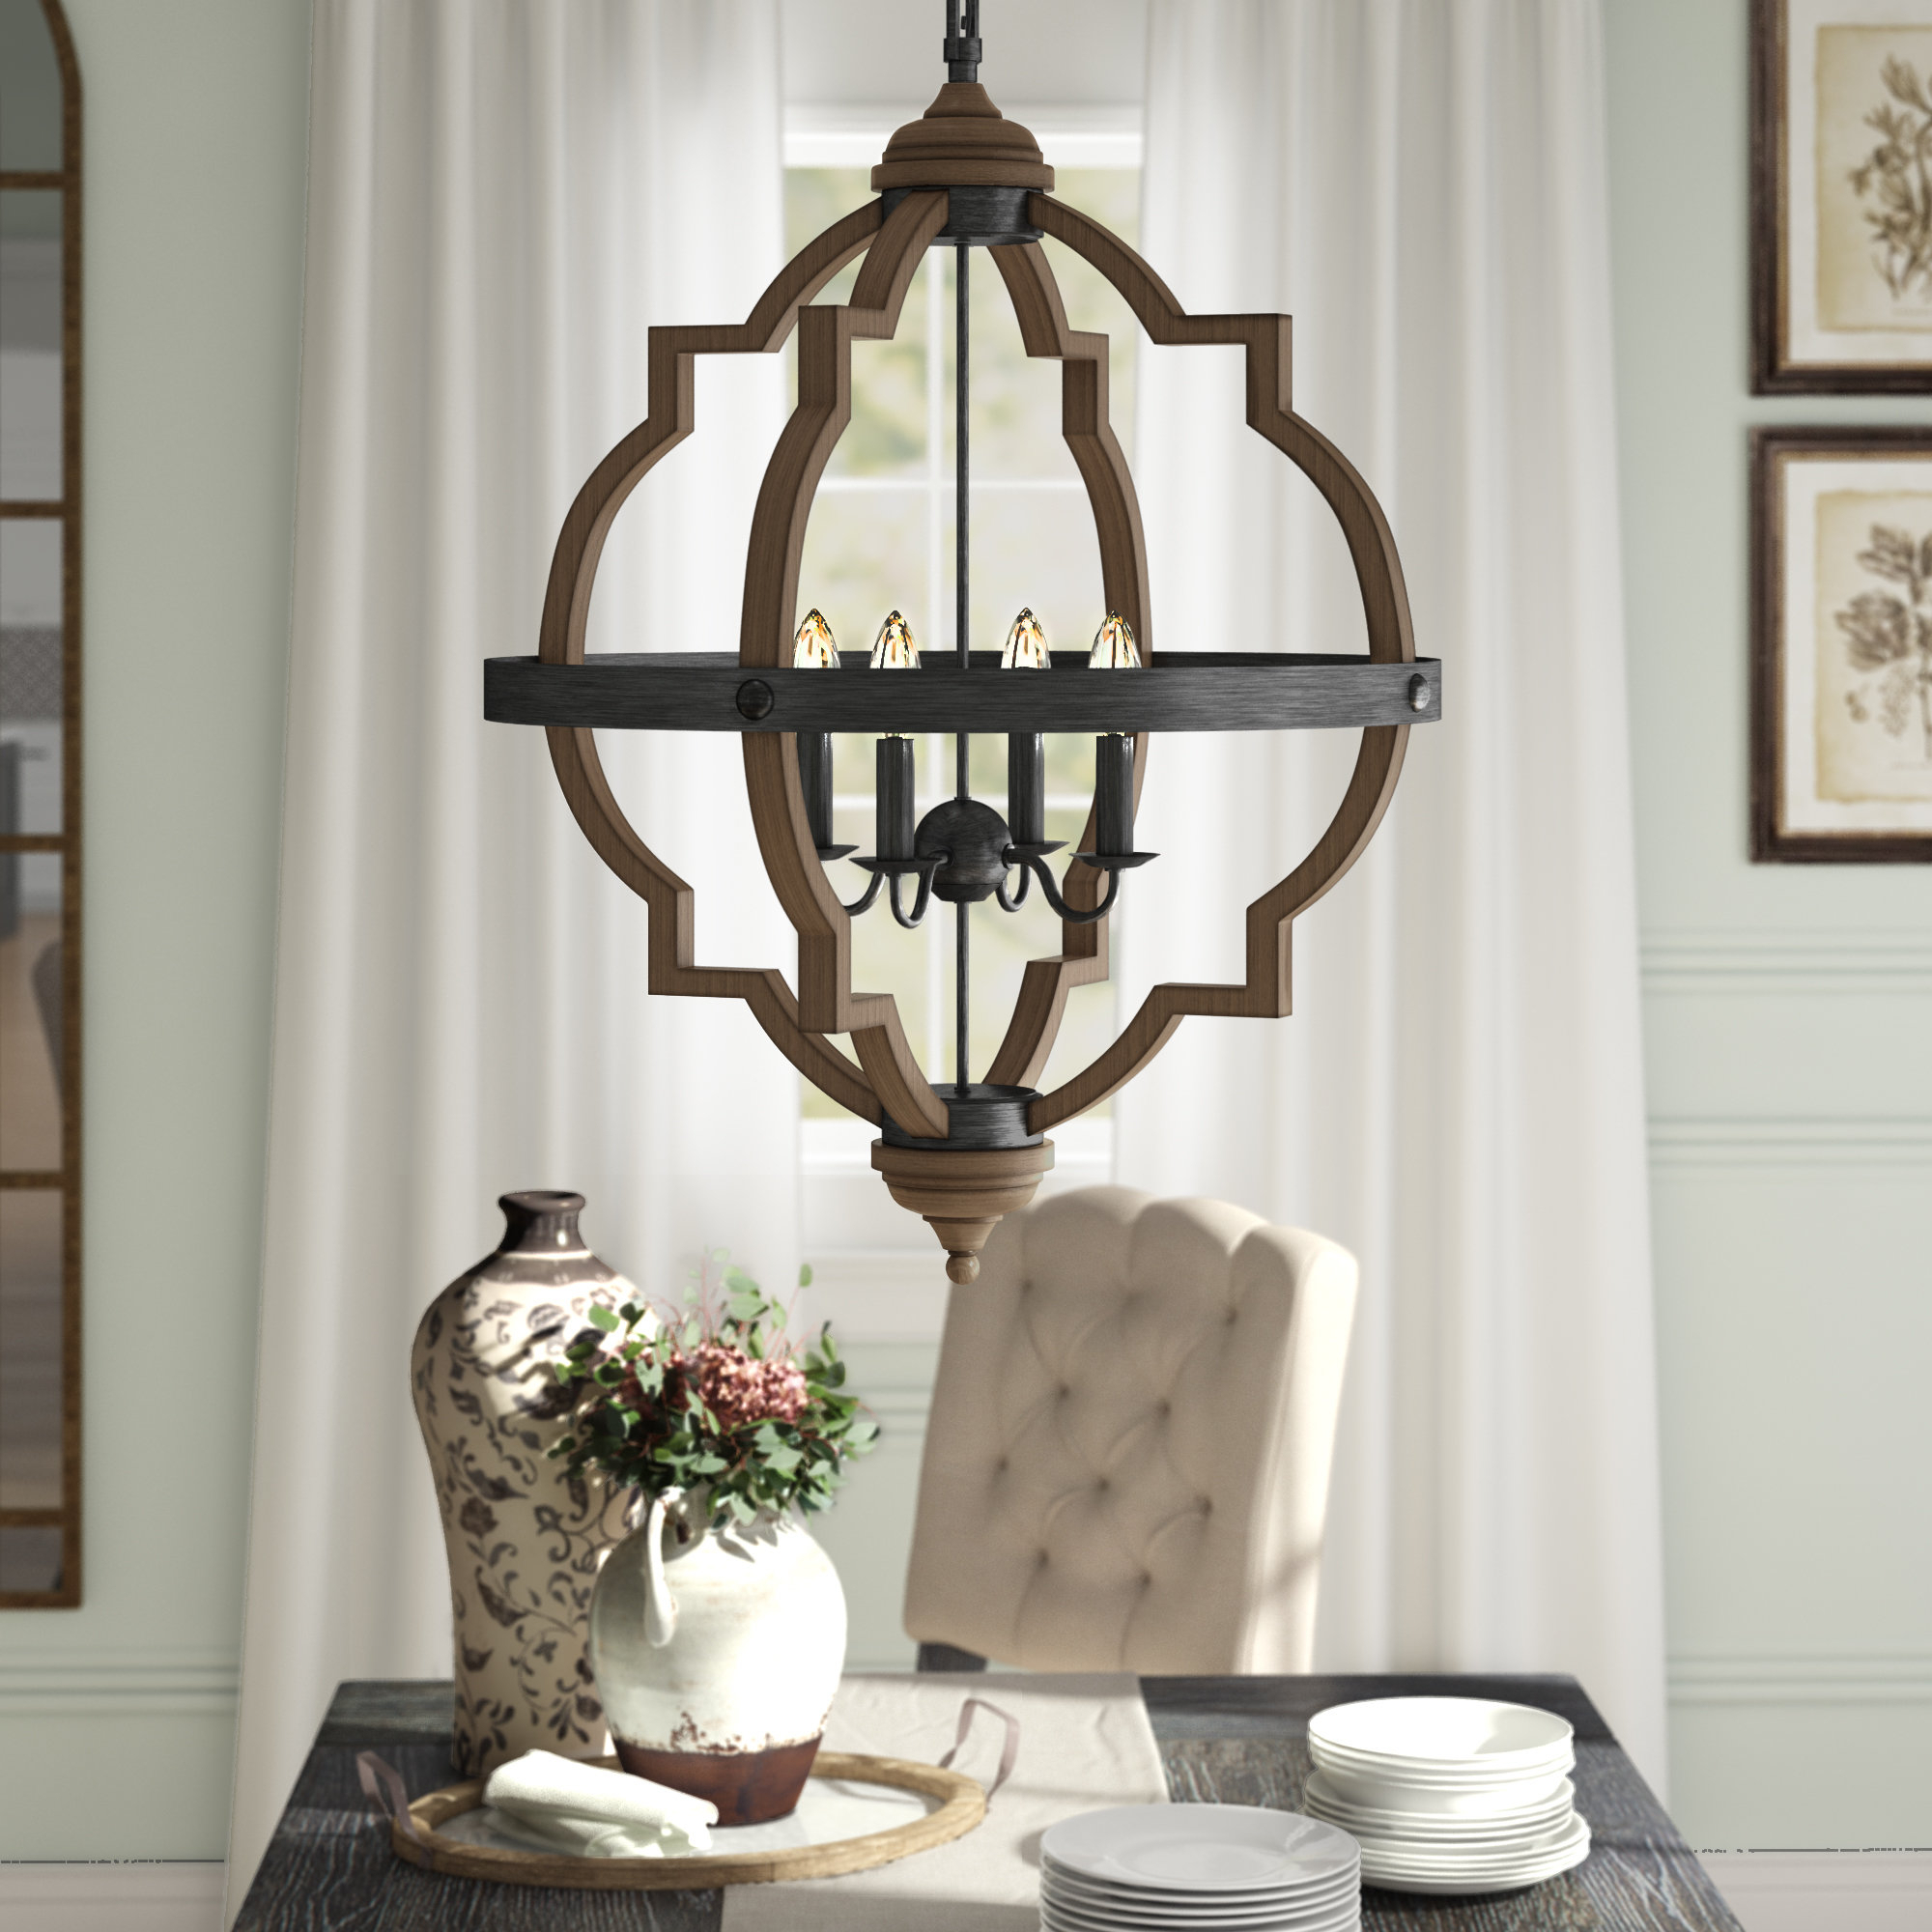 Bennington 4 Light Candle Style Chandelier Pertaining To Trendy Kaycee 4 Light Geometric Chandeliers (View 13 of 25)